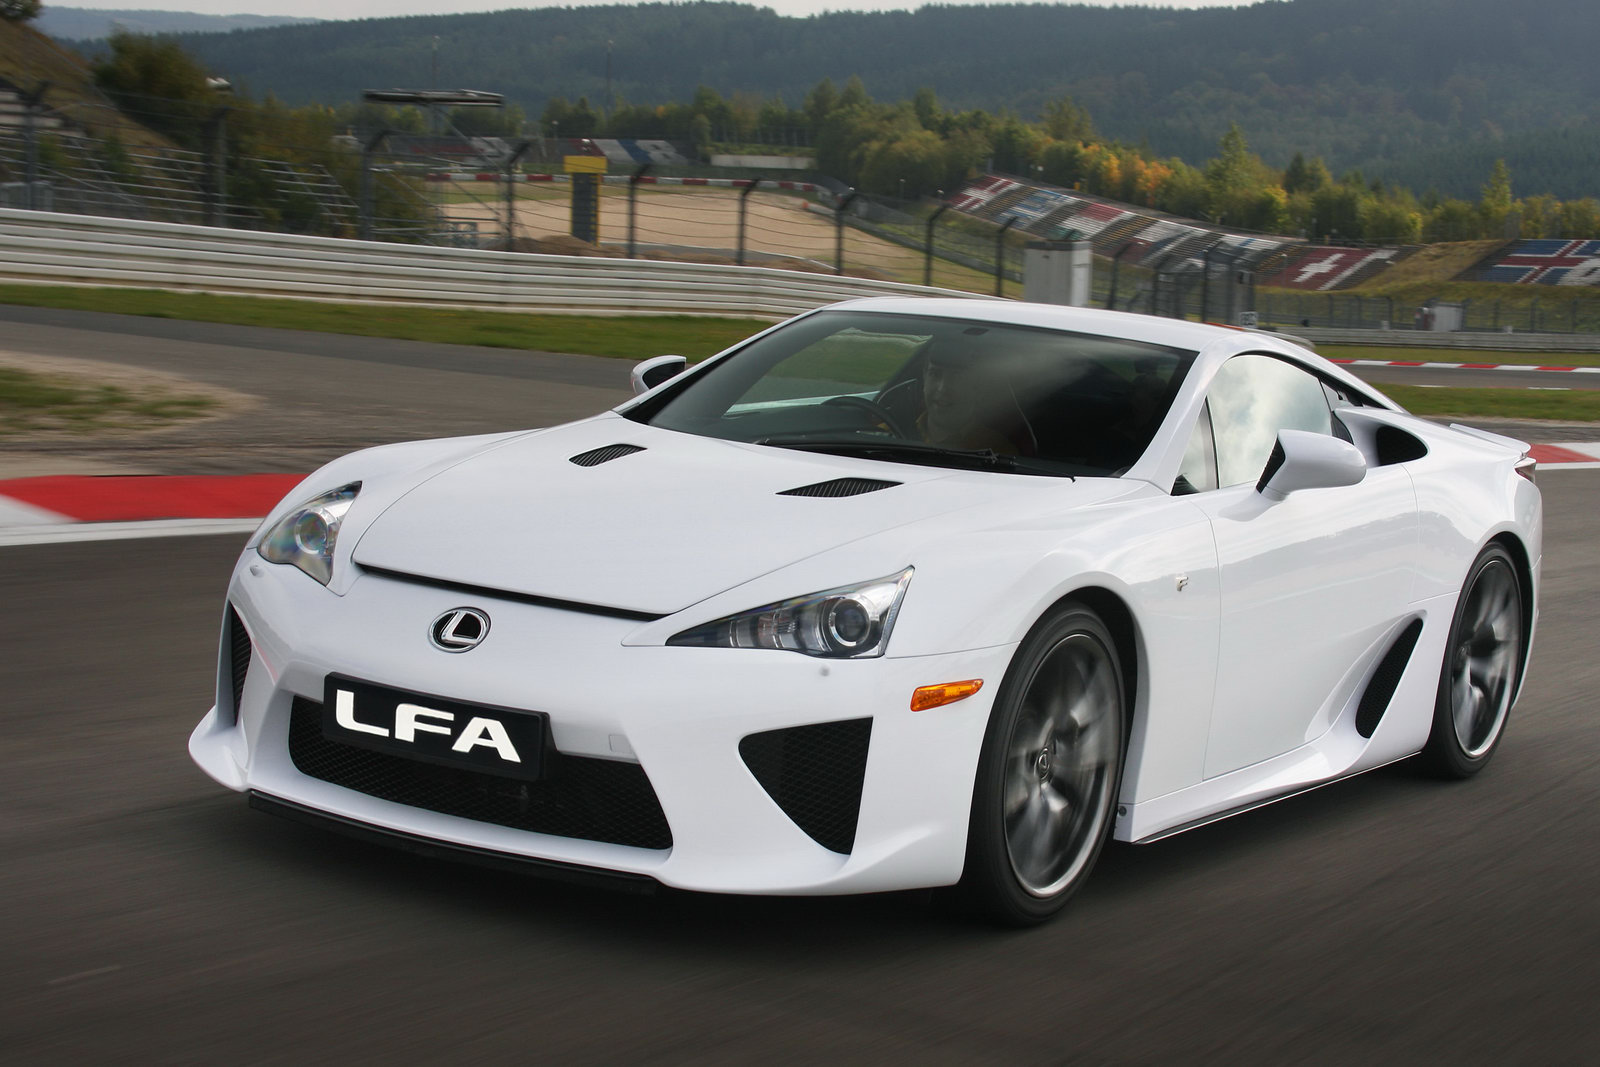 lexus lfa 2012 potente motor y grandes prestaciones lista de carros. Black Bedroom Furniture Sets. Home Design Ideas